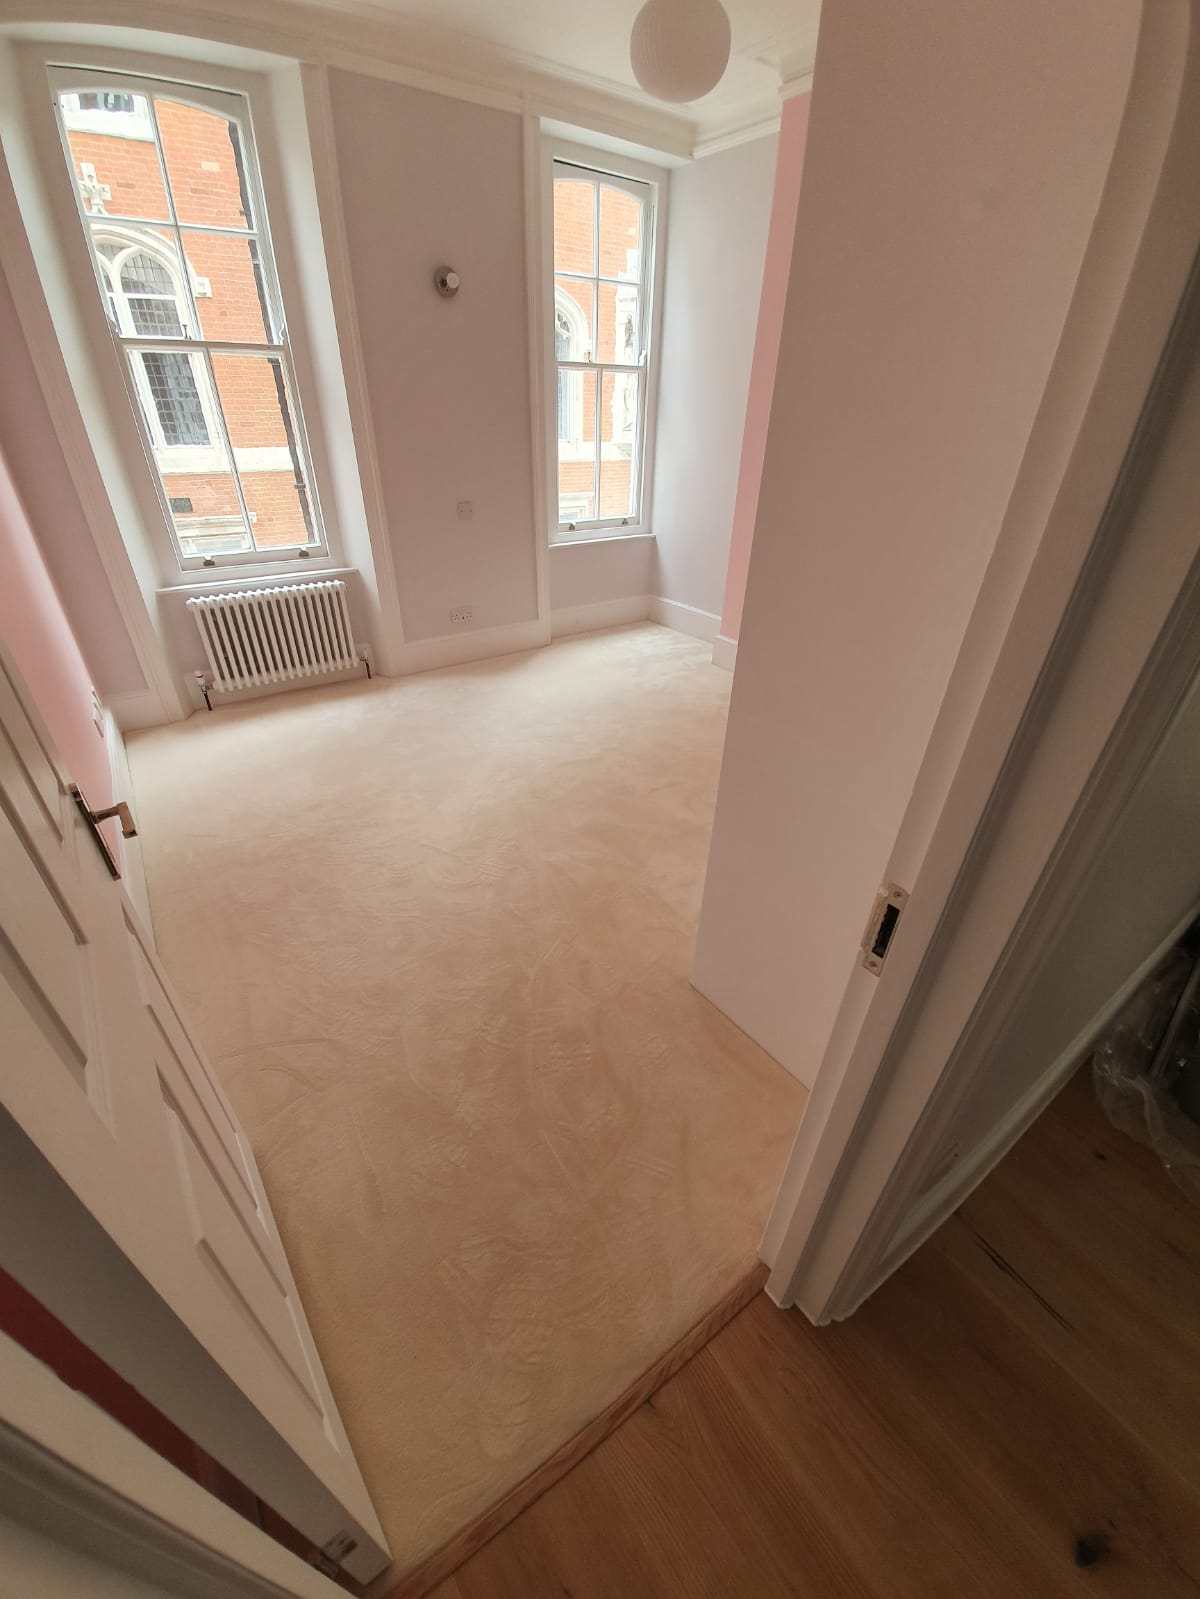 Brockway Carpets Padstow Pebble Mohair Carpet in Chiswick 2